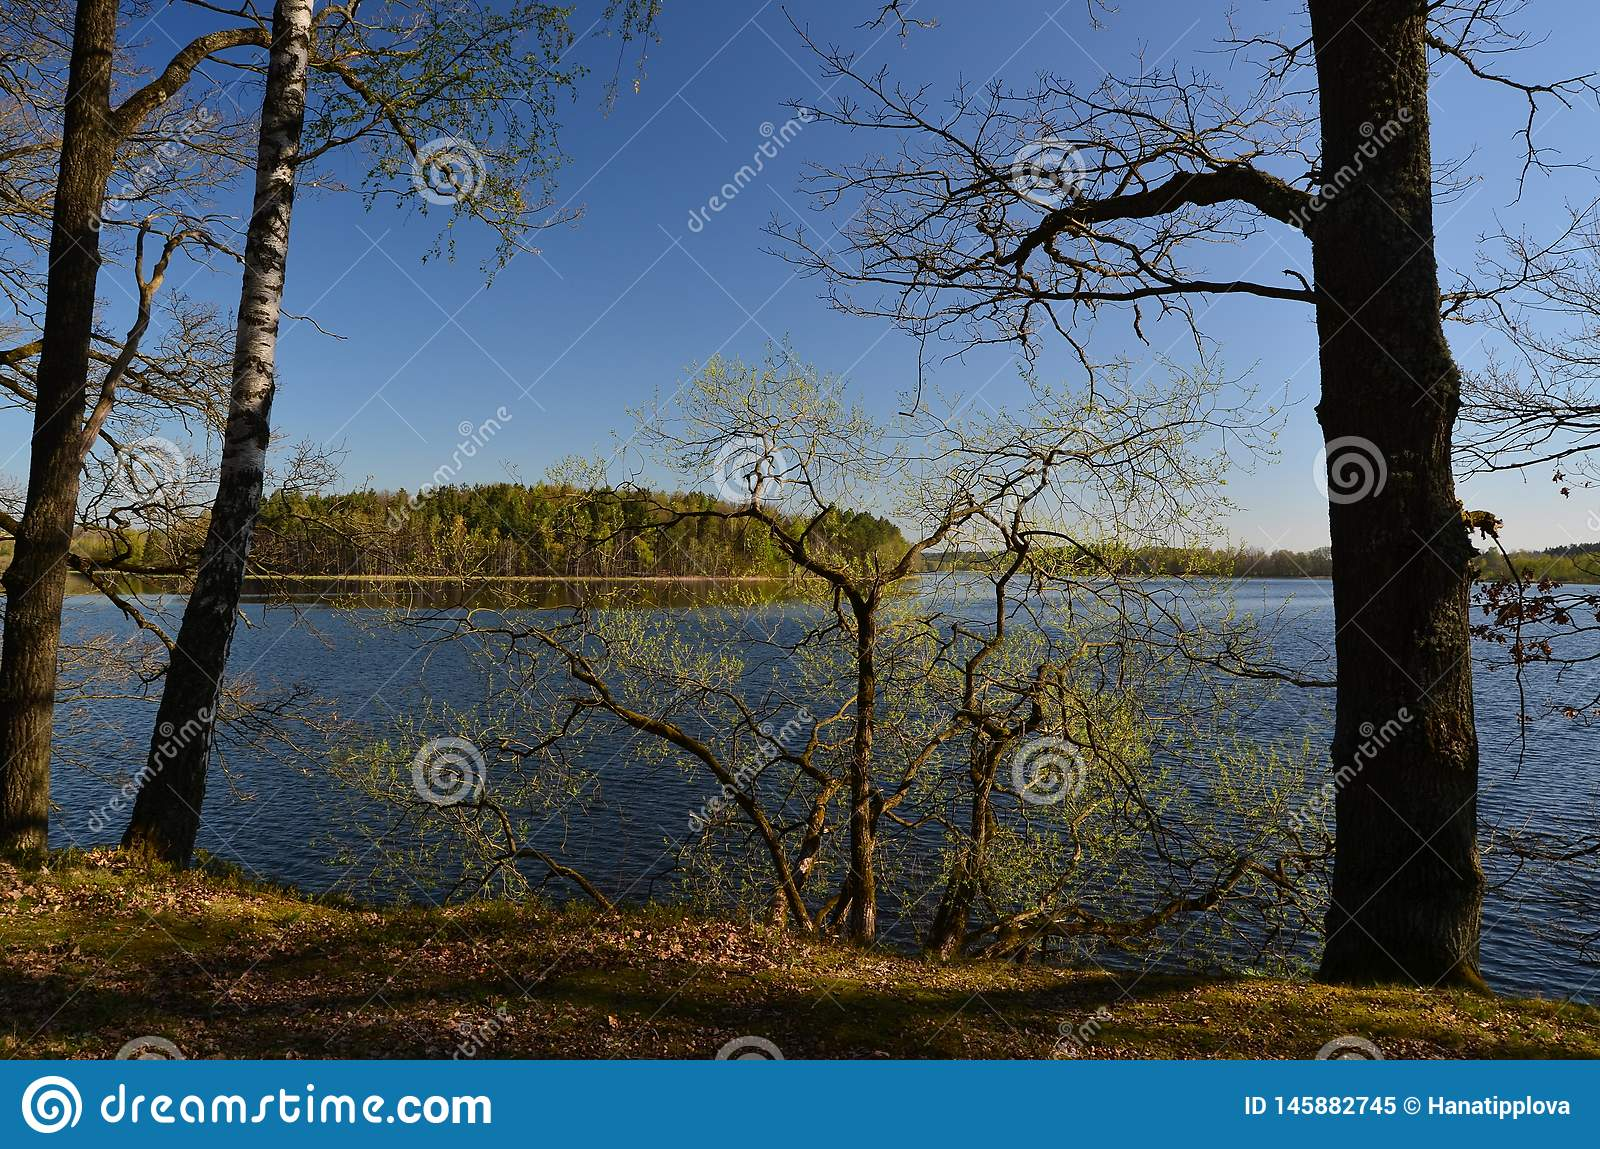 Ponds in the countryside, Kaclezsky Pond of South Bohemia